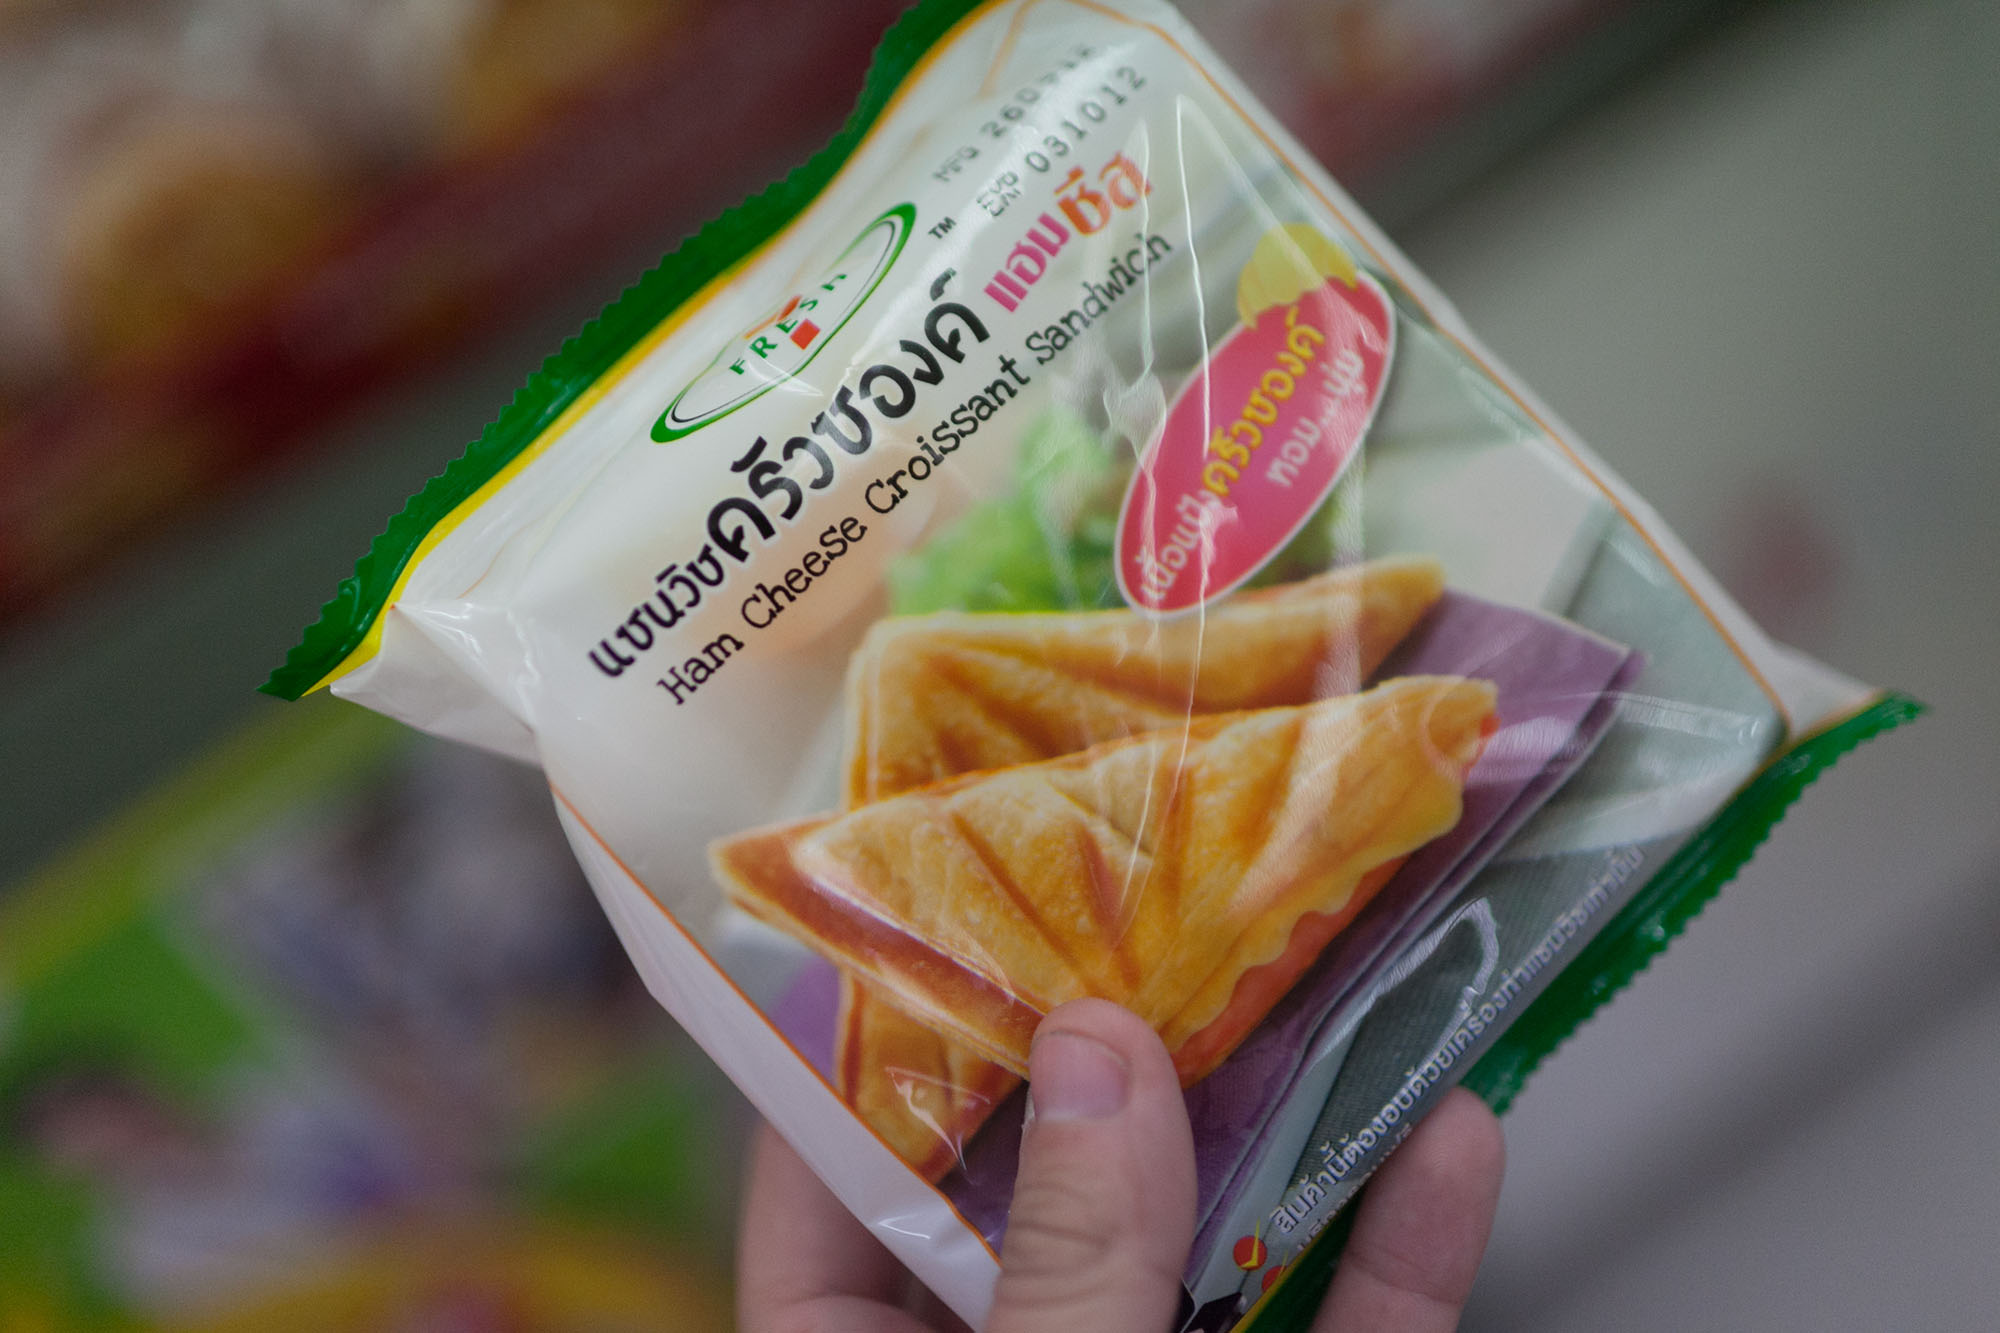 5 Best Meals to Have in Thailand - Ham and Cheese Toasties from 7-Eleven in Thailand